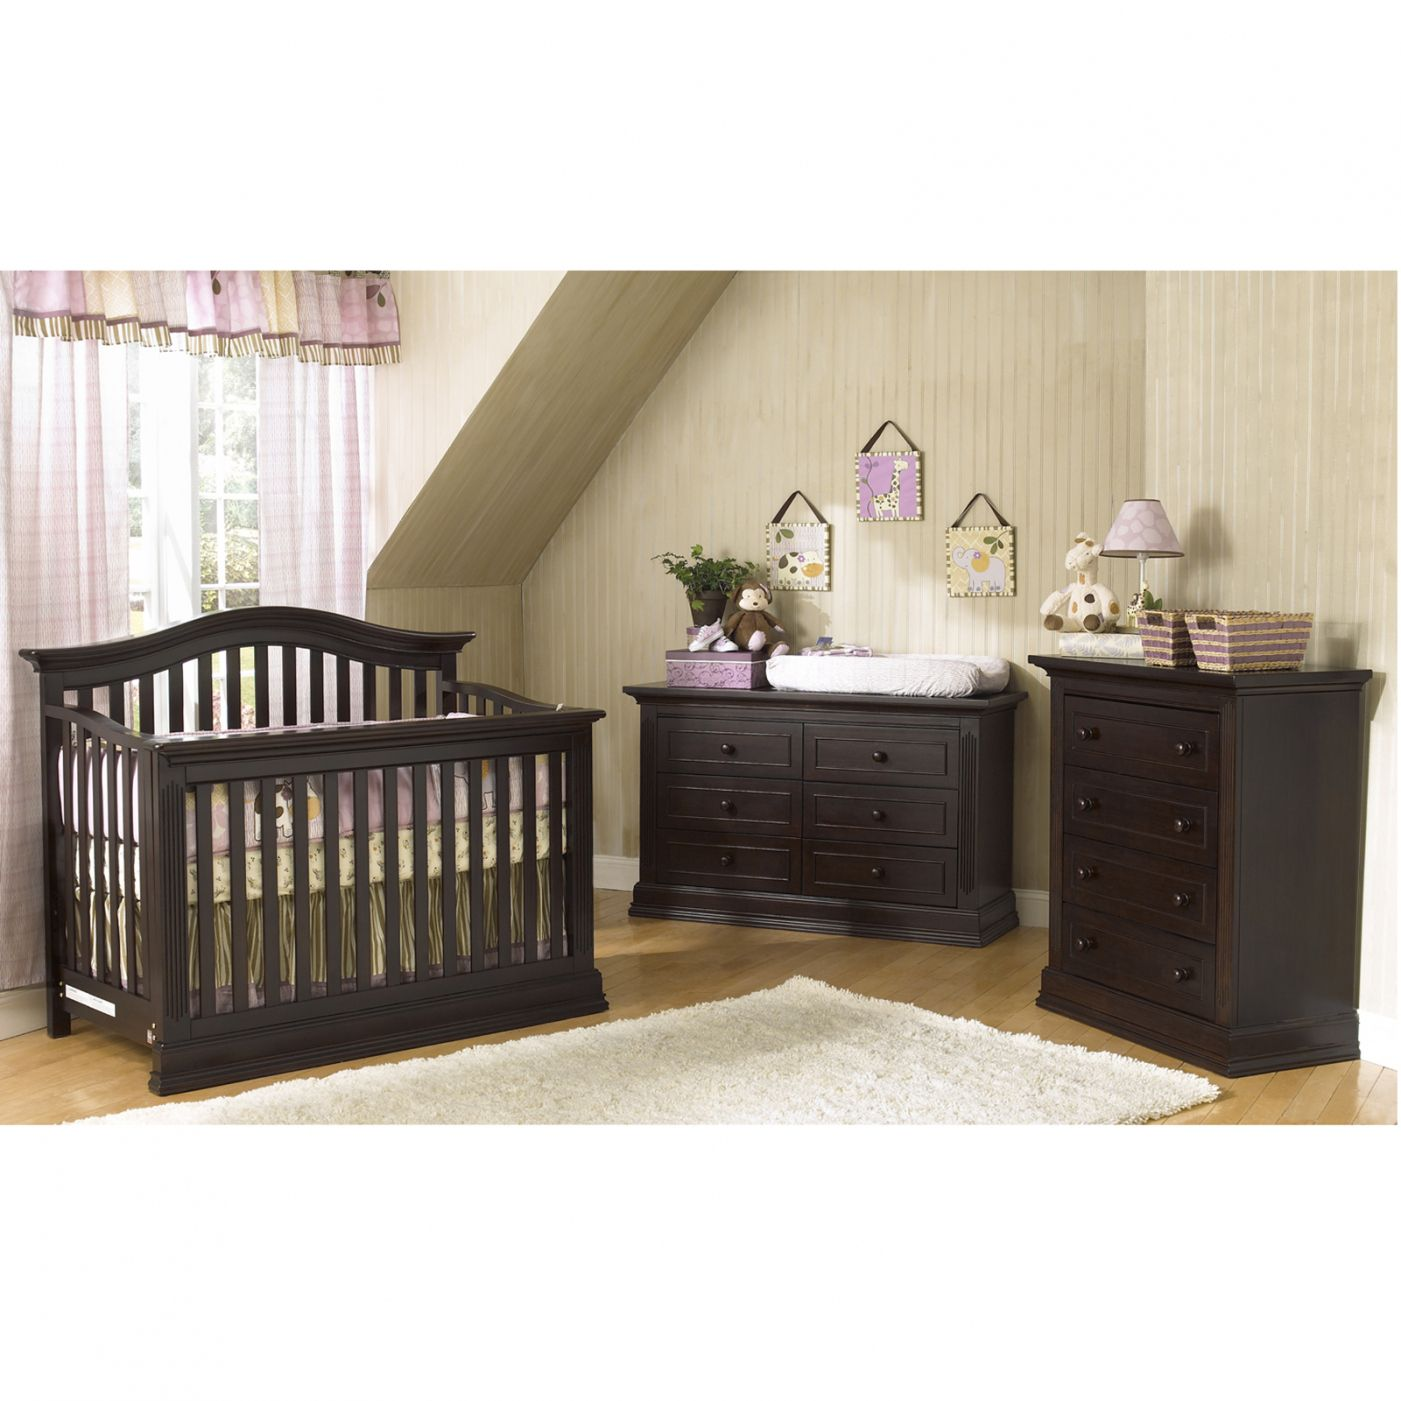 Baby Furniture at Burlington Coat Factory - Best Interior Paint ...